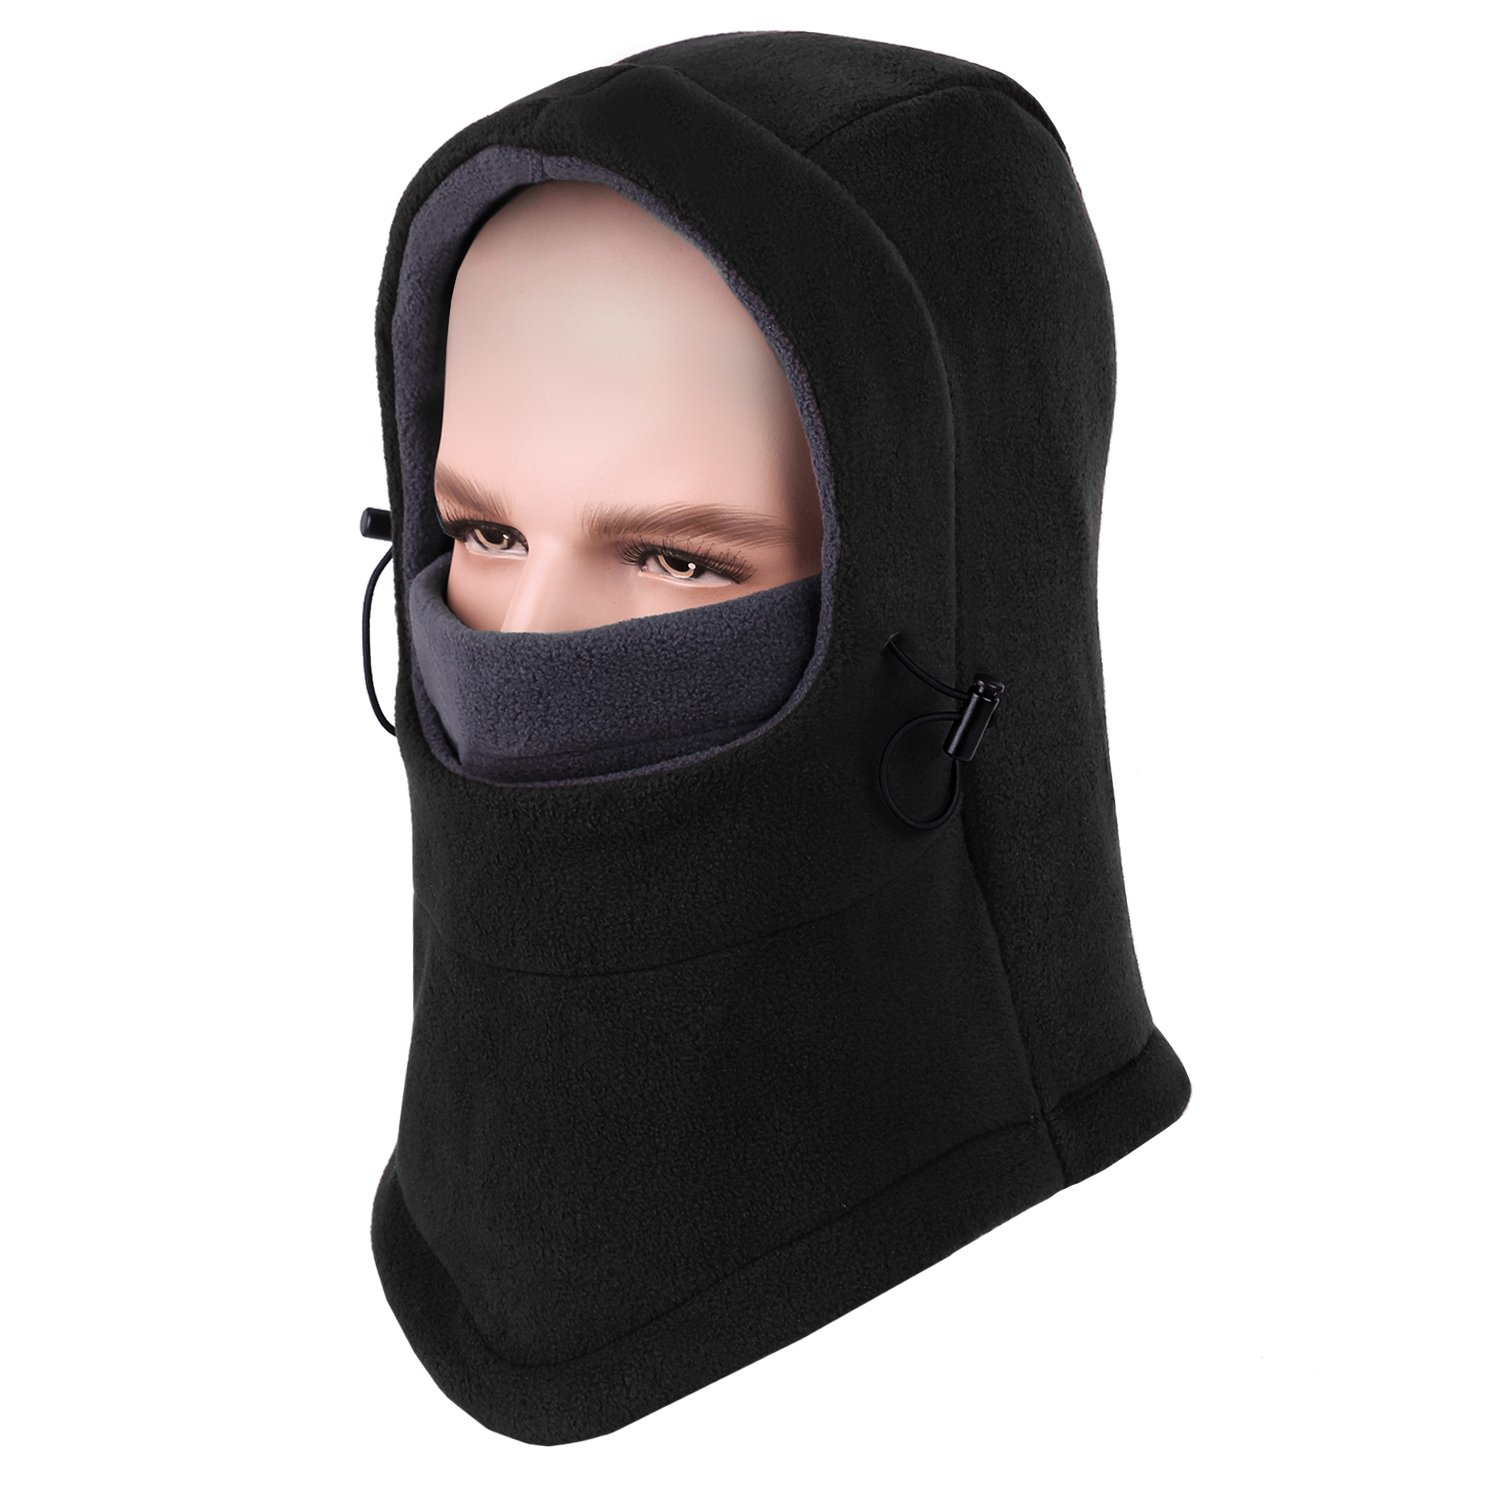 COOLOO Women's Lightweight Balaclava Ski Face Mask for Men, Women and Children, Ear-Flap Winter Hat